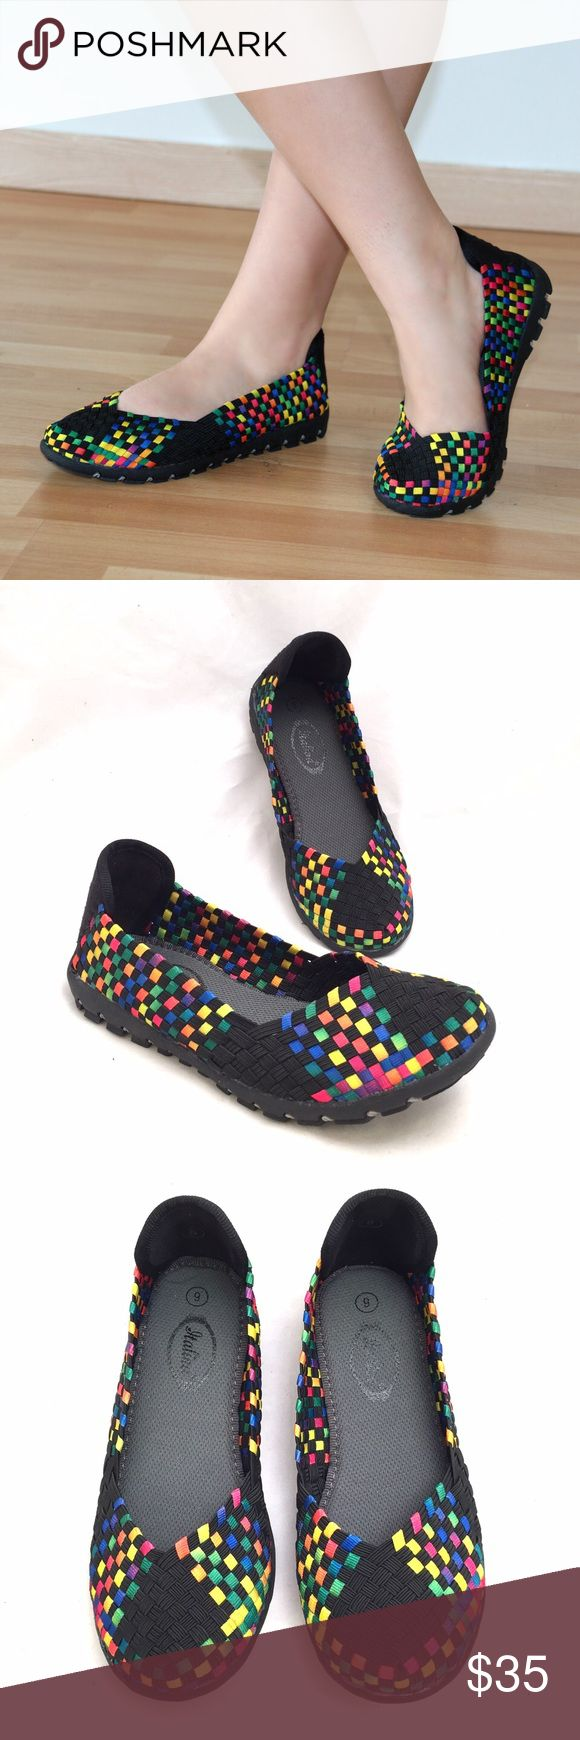 Italina Memory Foam Sneakers Extremely comfortable! Style meets comfort in these very cute sneaker by Italina. Has memory foam inside for ultimate comfort. Made of woven elastic. Italina Shoes Sneakers